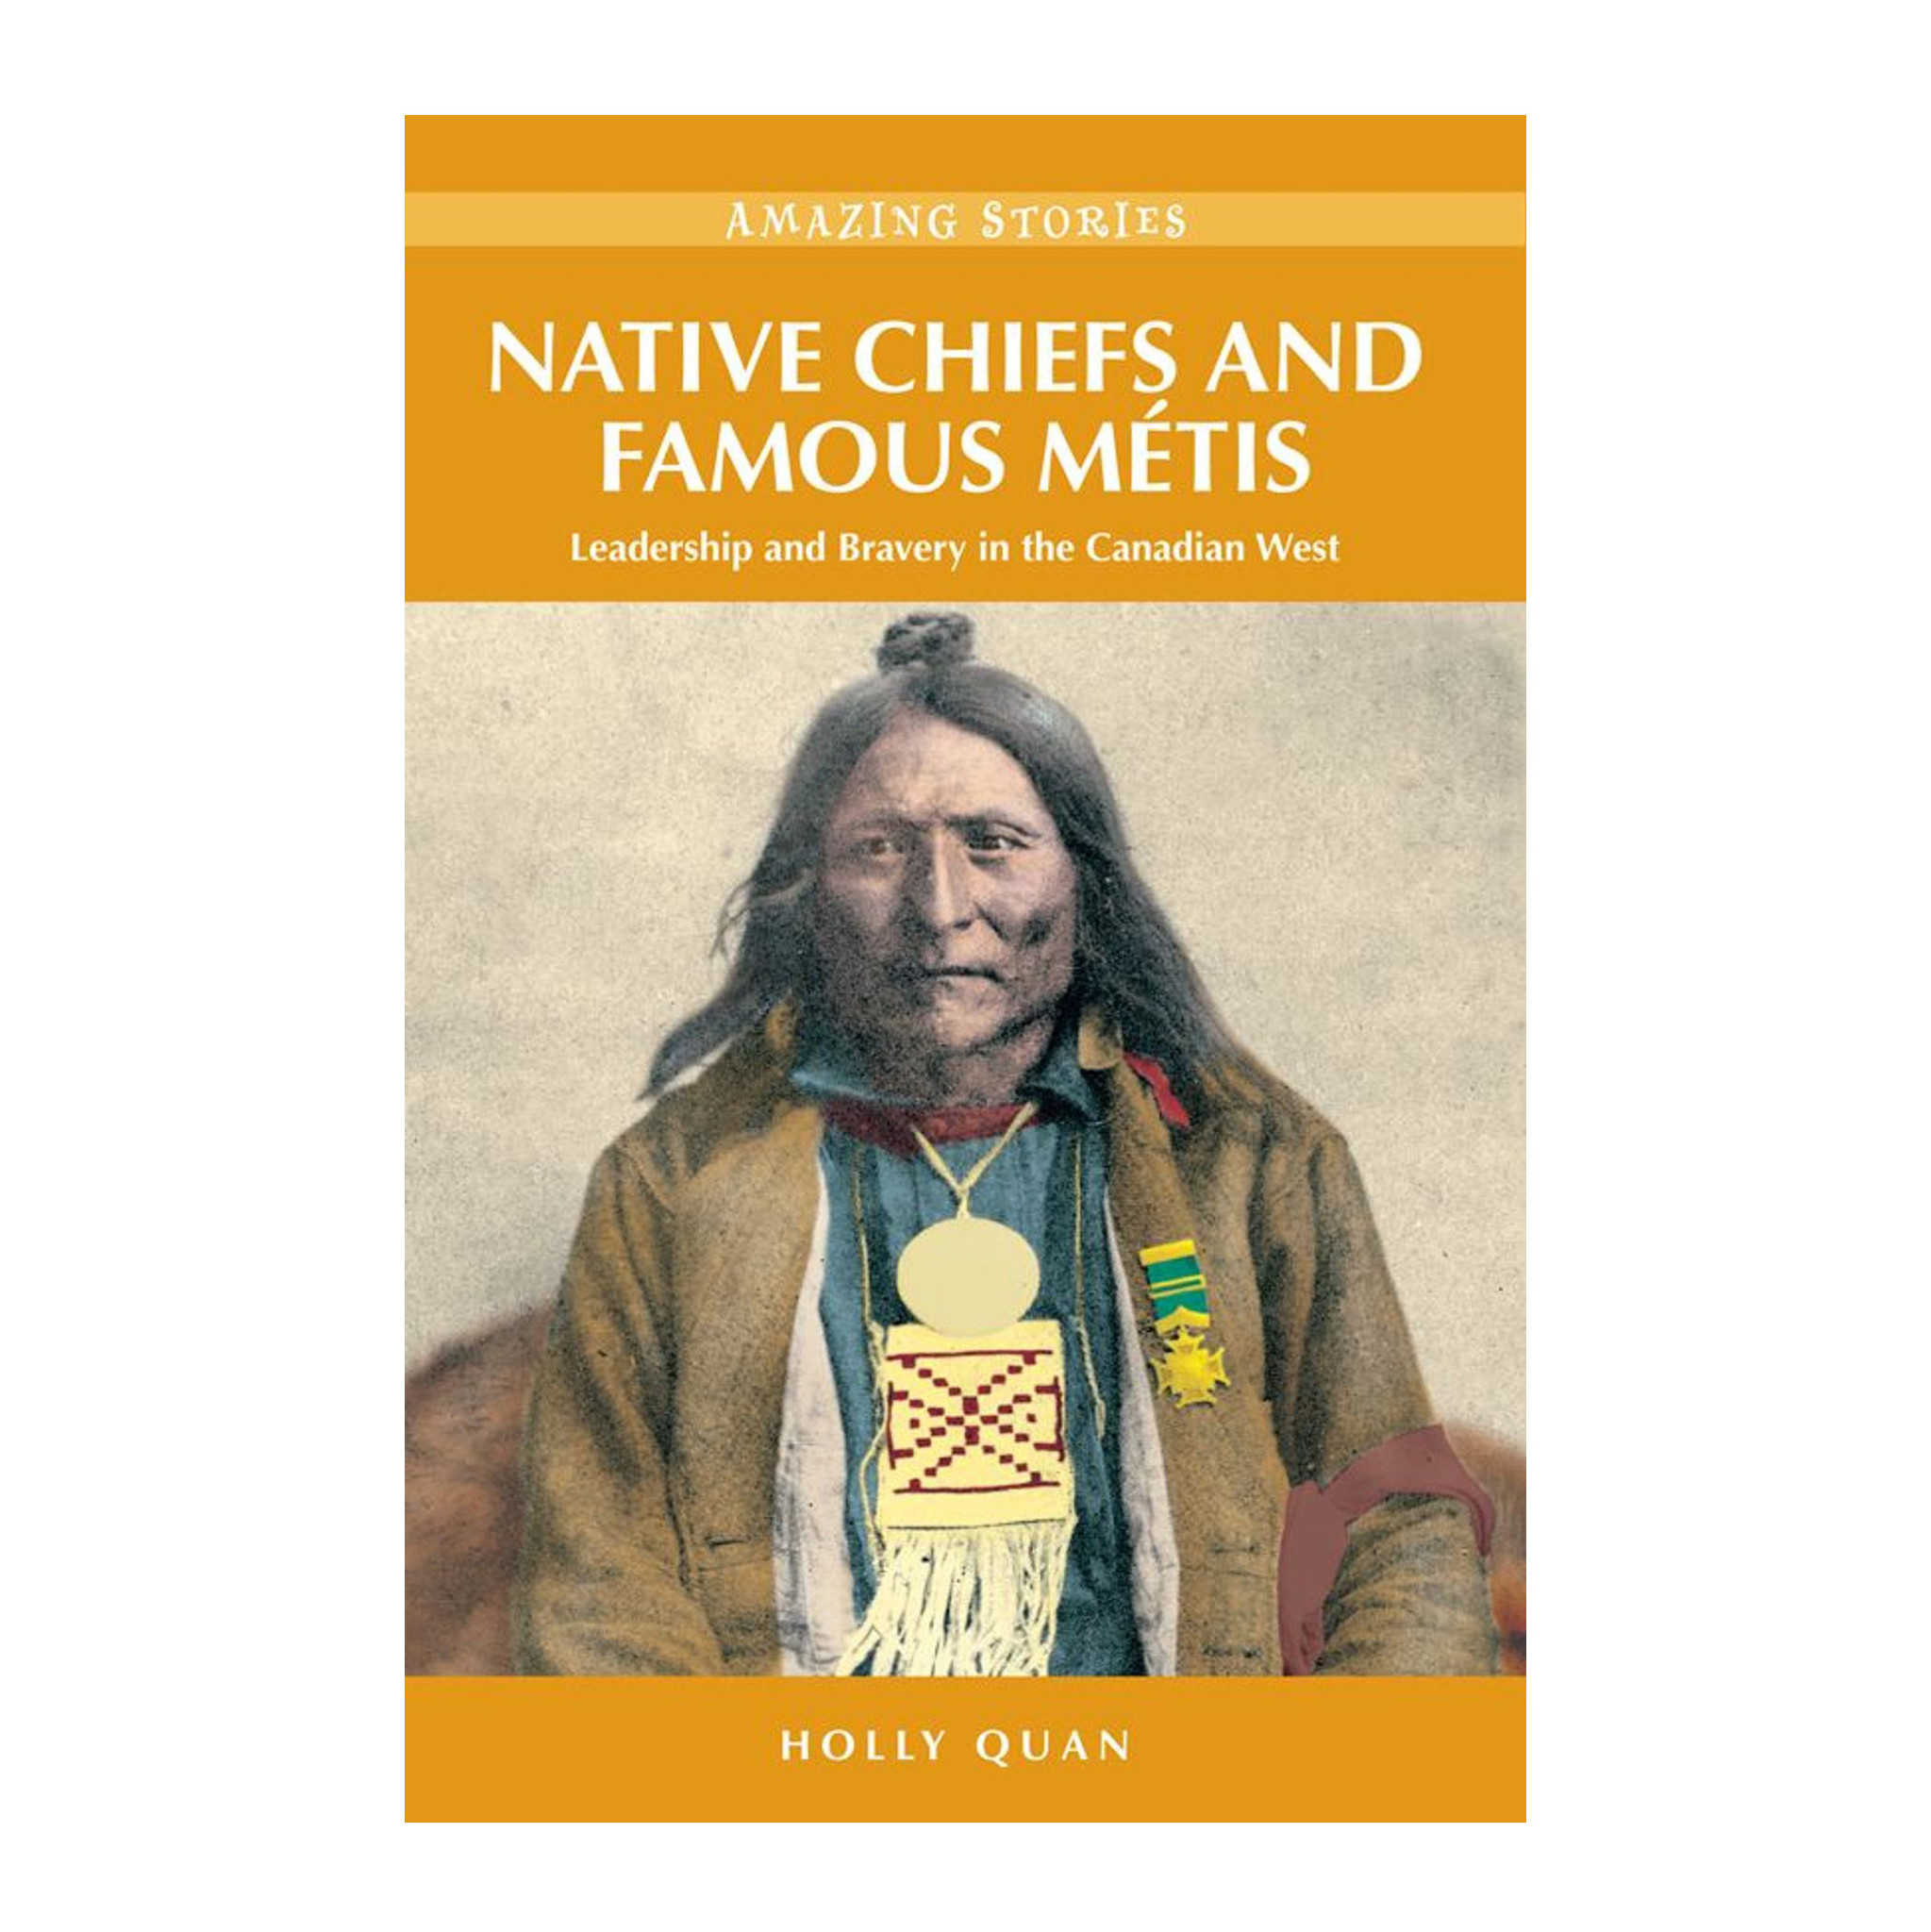 Native Chiefs and Famous Métis: Leadership and Bravery in the Canadian West